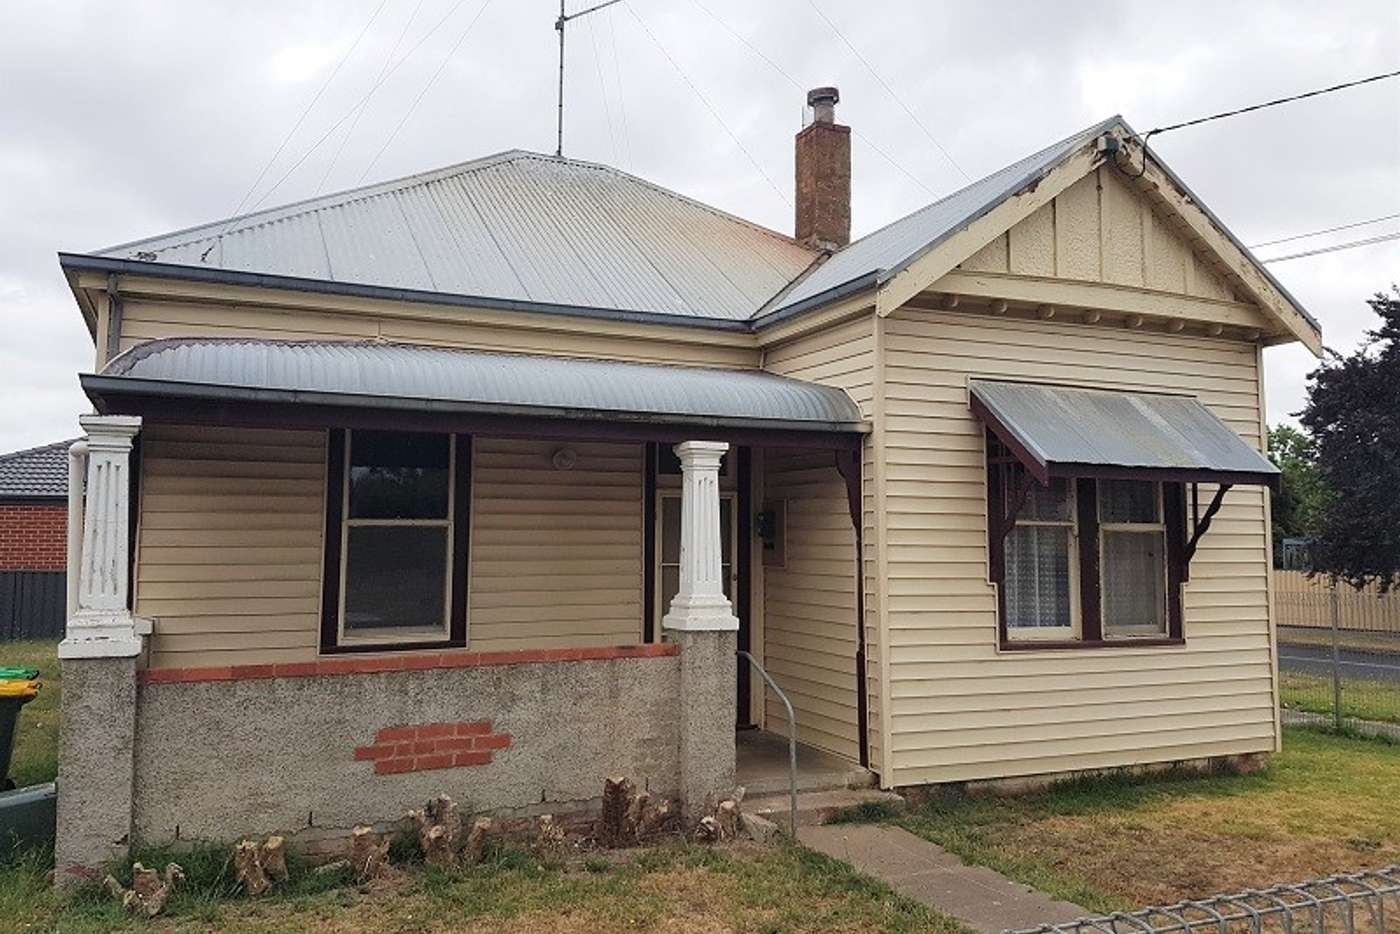 Main view of Homely house listing, 156 Hearn Street, Colac VIC 3250